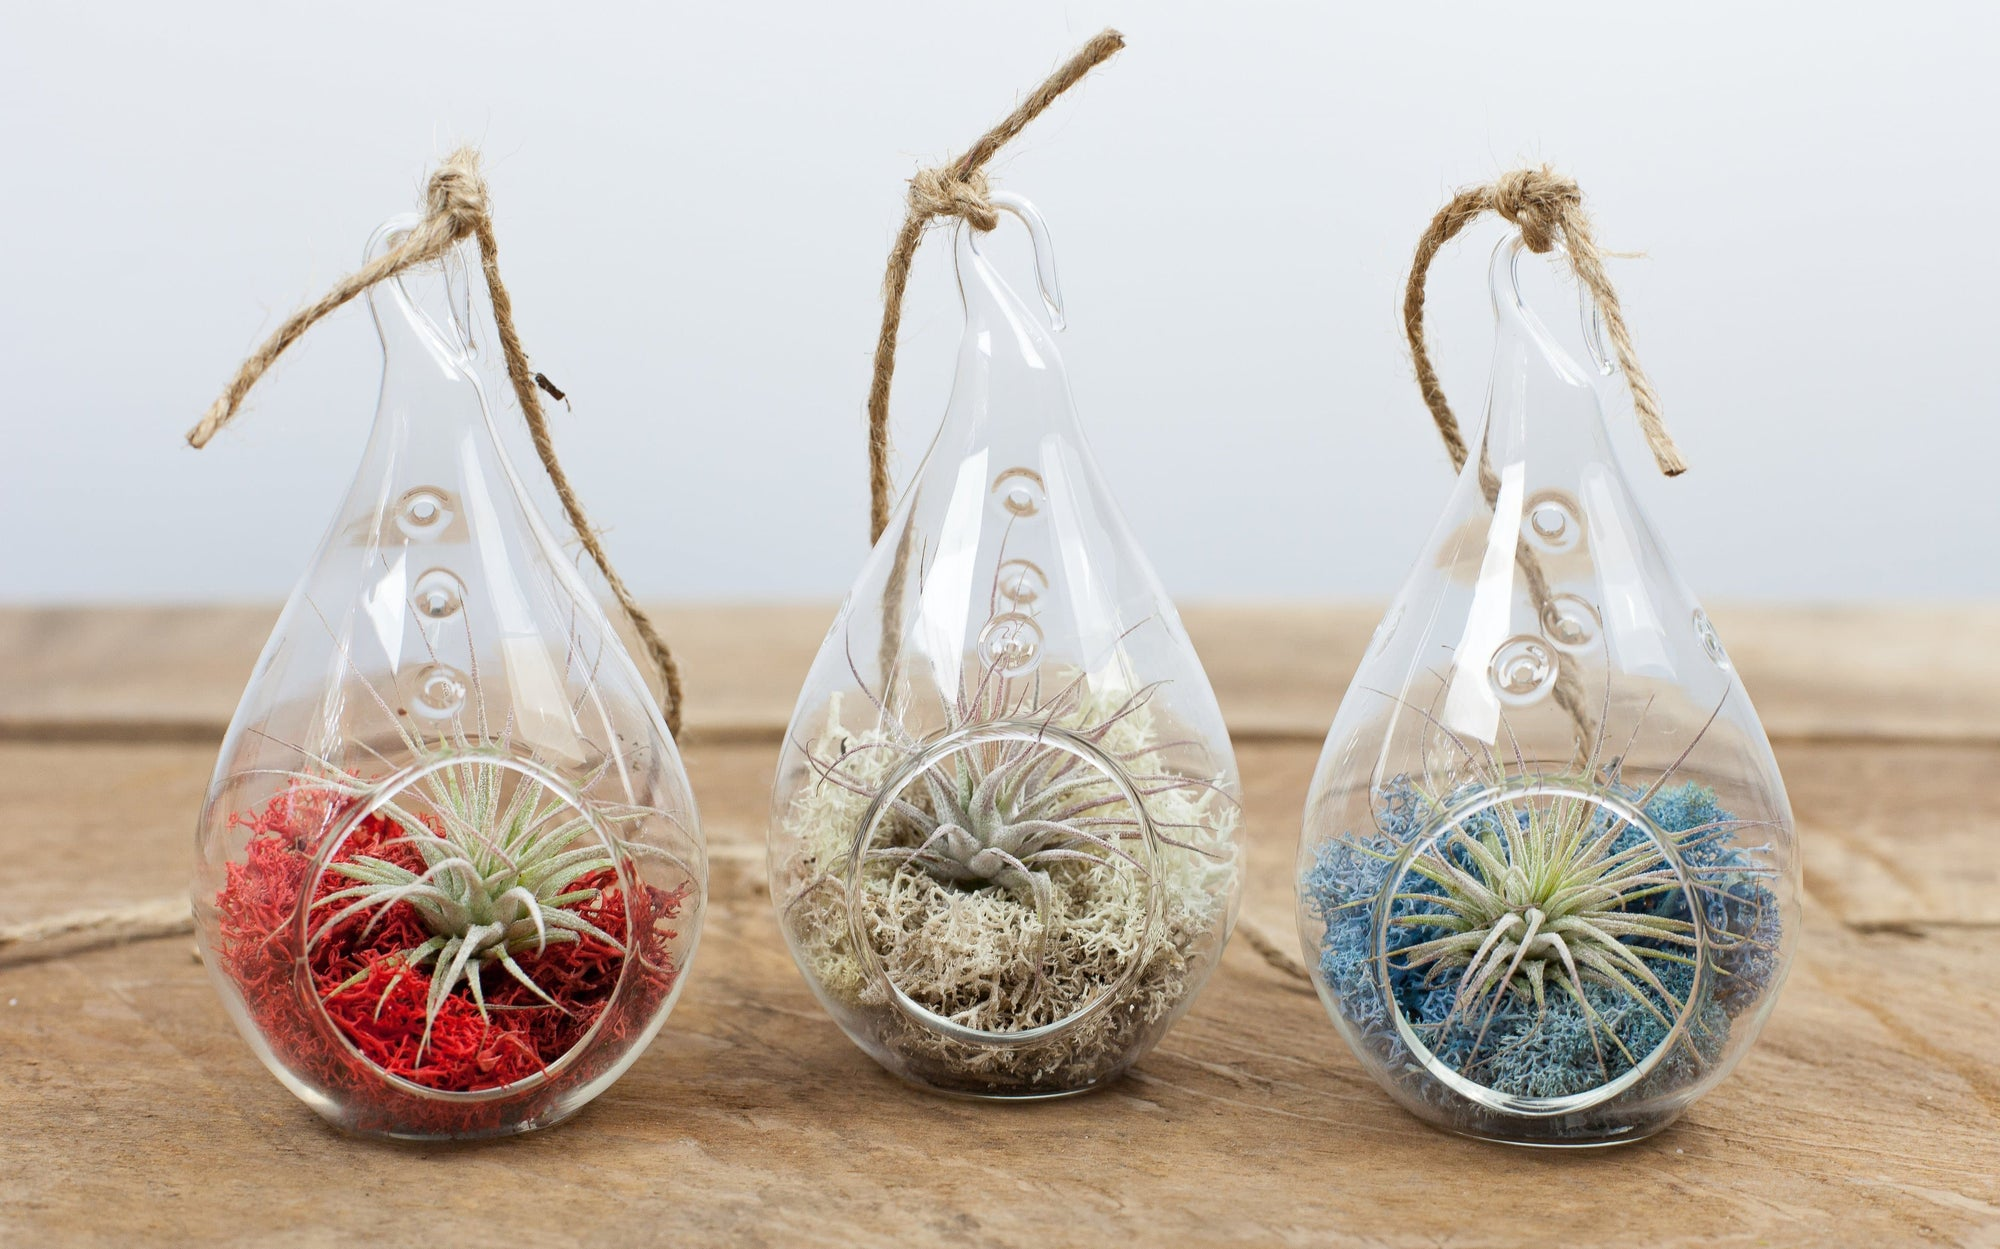 Wholesale Teardrop Terrarium kit + Air Plant